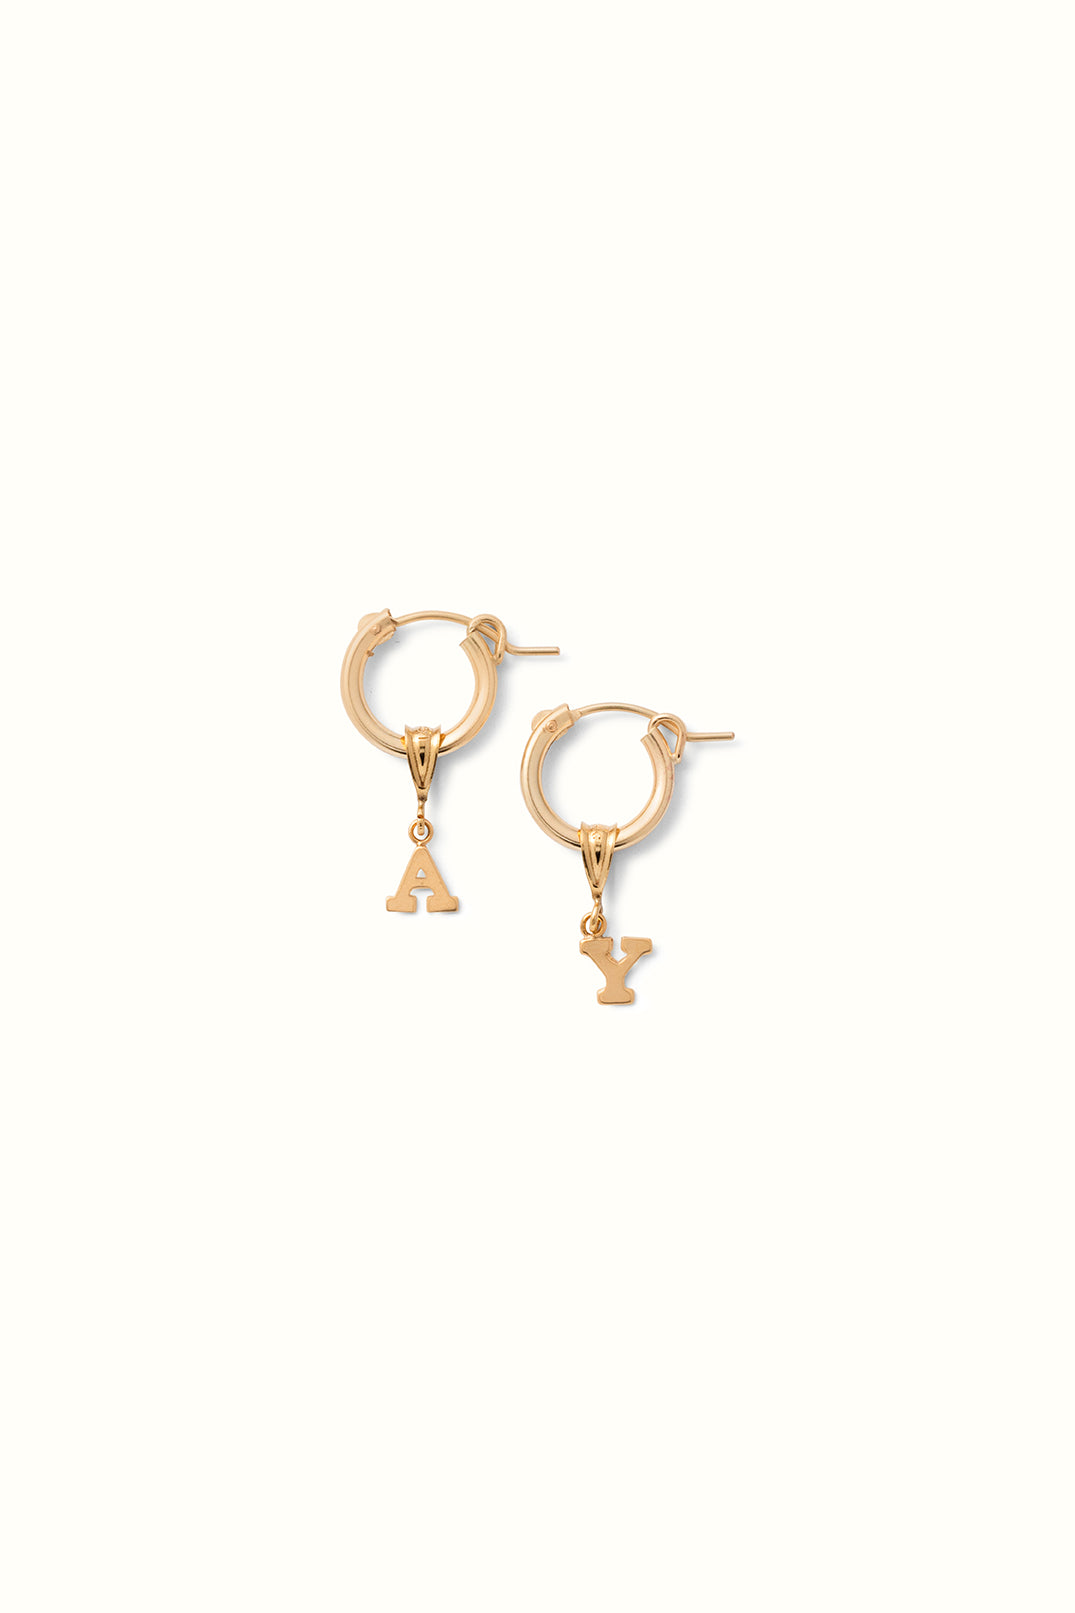 a close up photo of a set of gold filled earring hoops with initial pendant charms